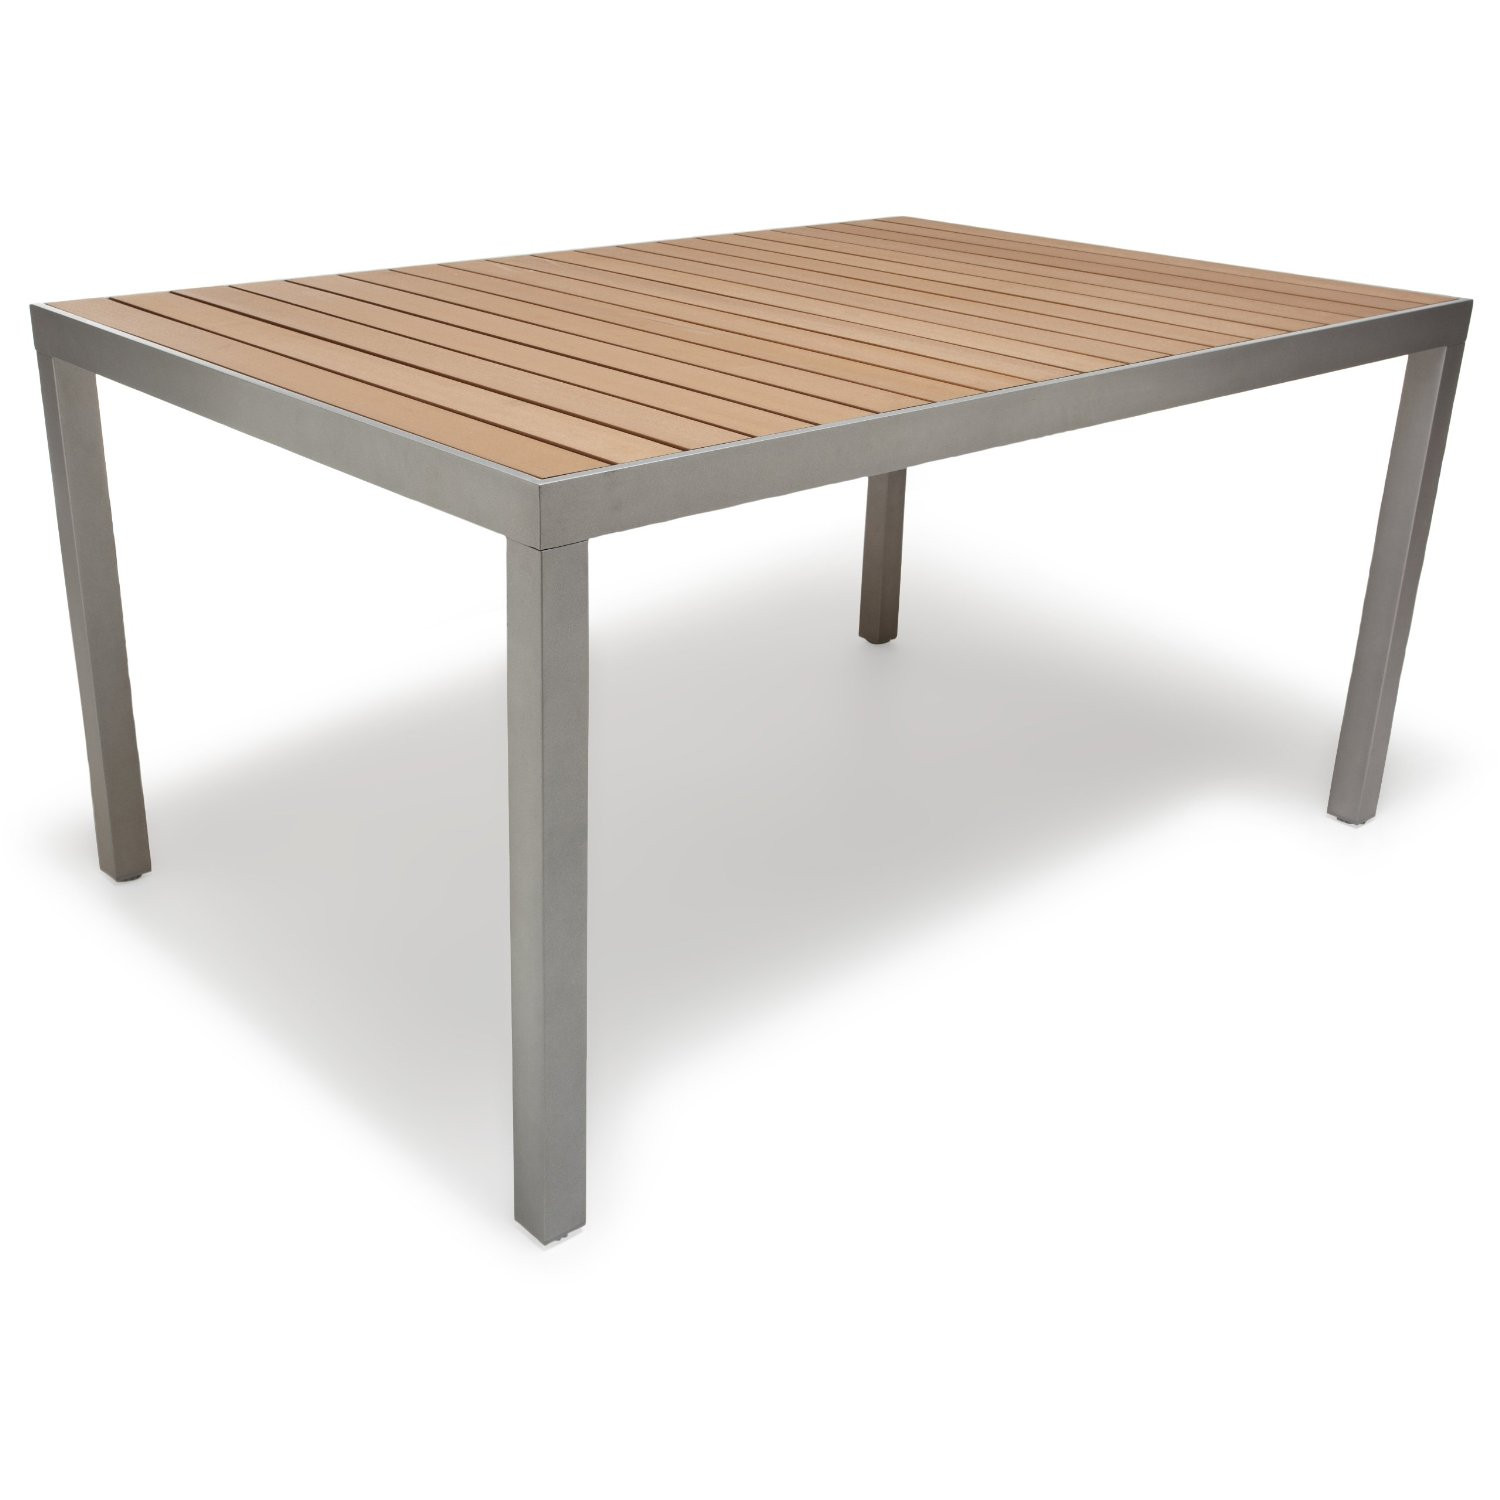 Best ideas about Amazon Dining Table . Save or Pin Strathwood Brook Rectangular Dining Table Amazon Now.